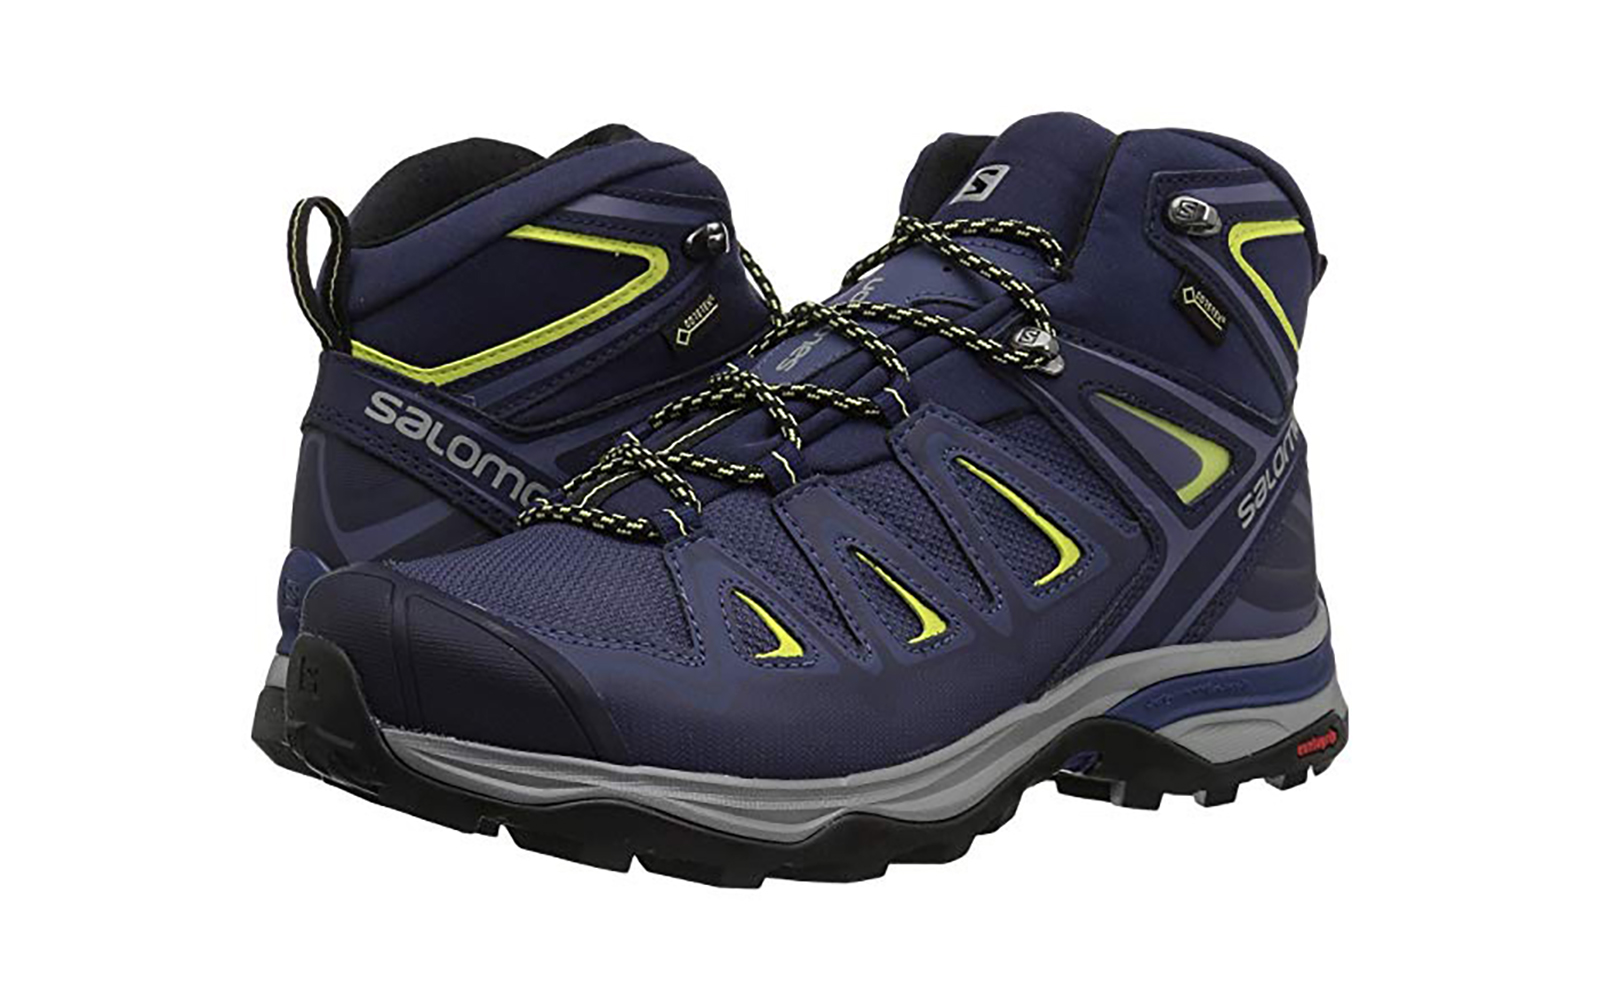 a0765a83adc70 The 14 Best Hiking Shoes and Boots, According to Reviews | Travel + ...